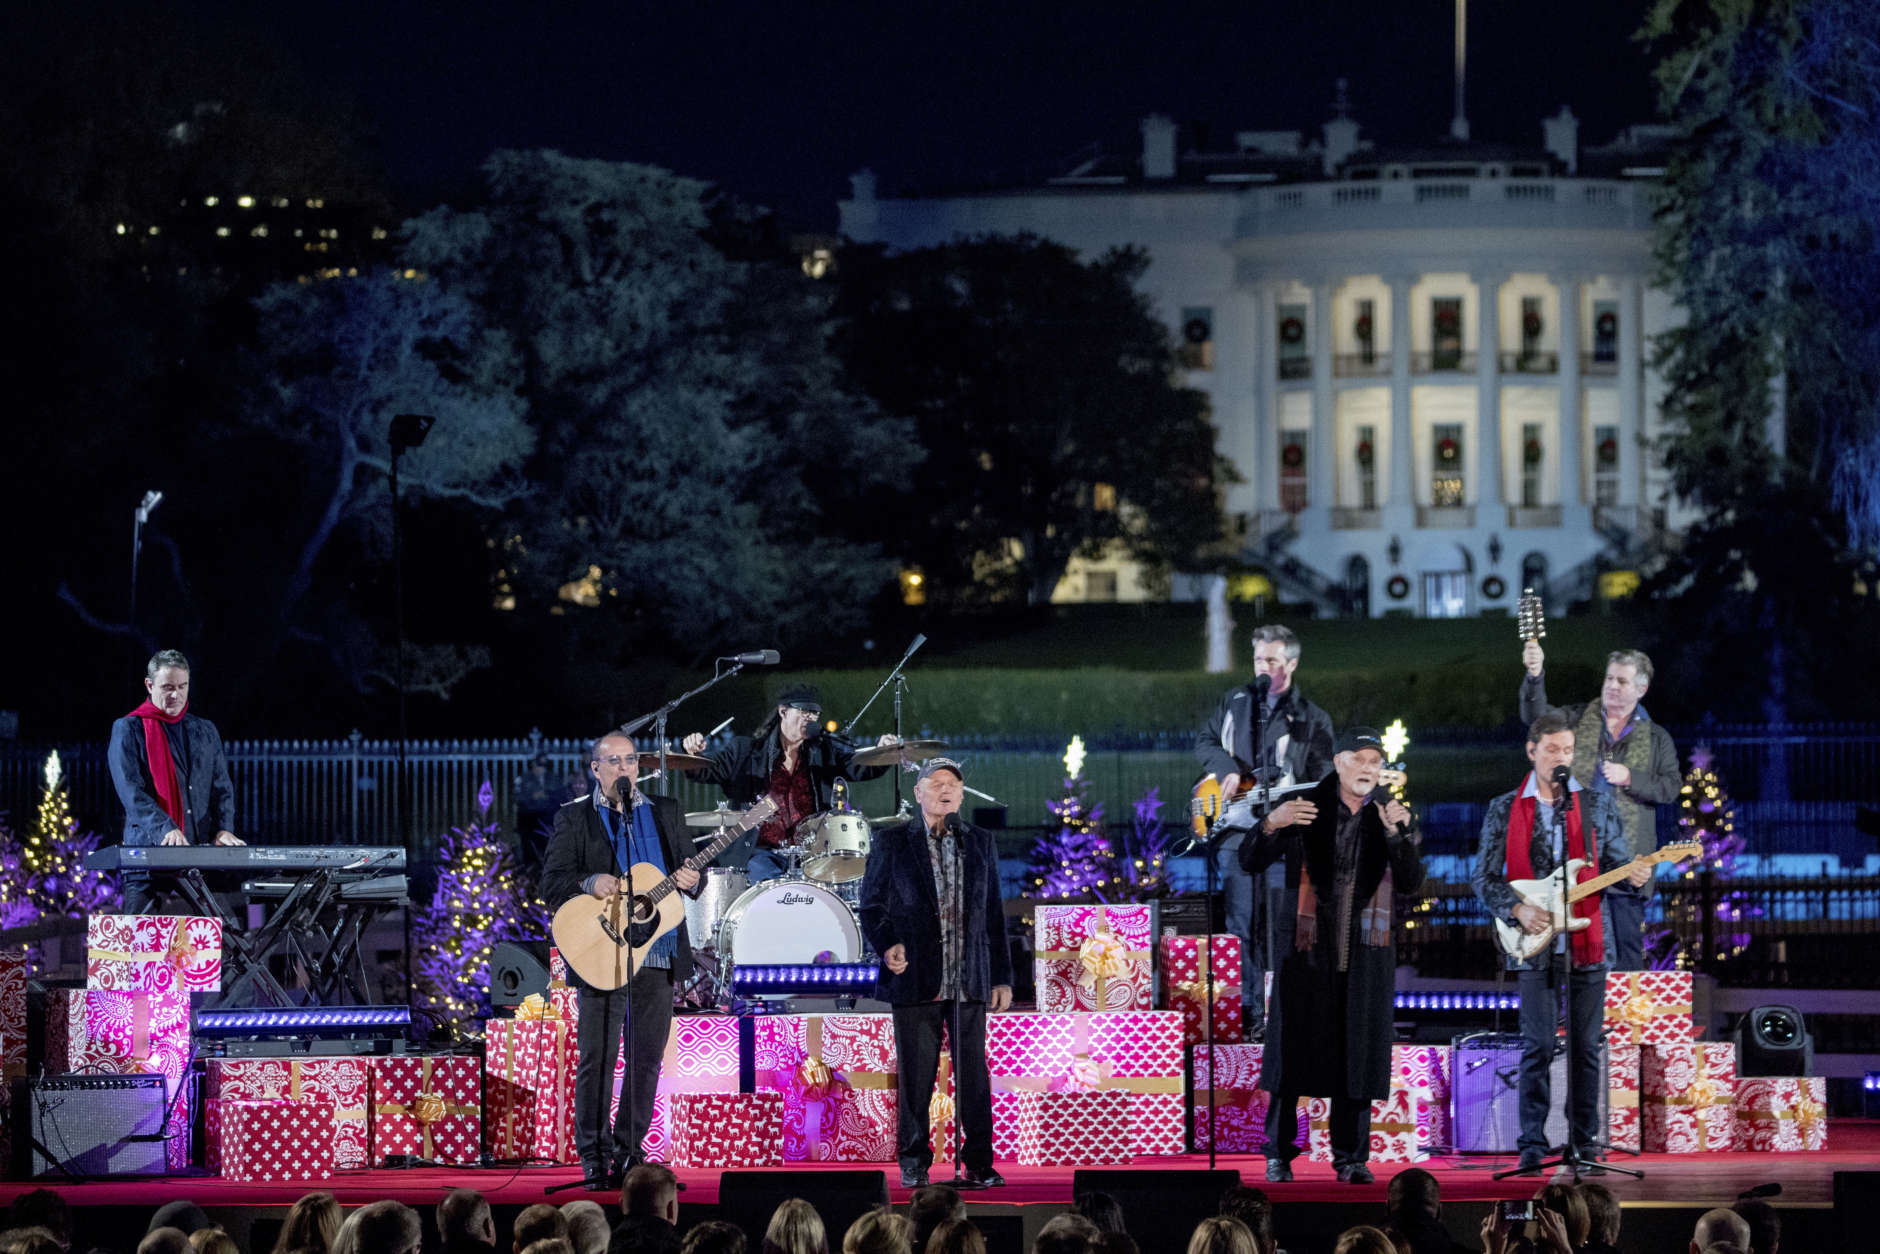 The Beach Boys perform during the lighting ceremony for the 2017 National Christmas Tree on the Ellipse near the White House, Thursday, Nov. 30, 2017, in Washington. (AP Photo/Andrew Harnik)